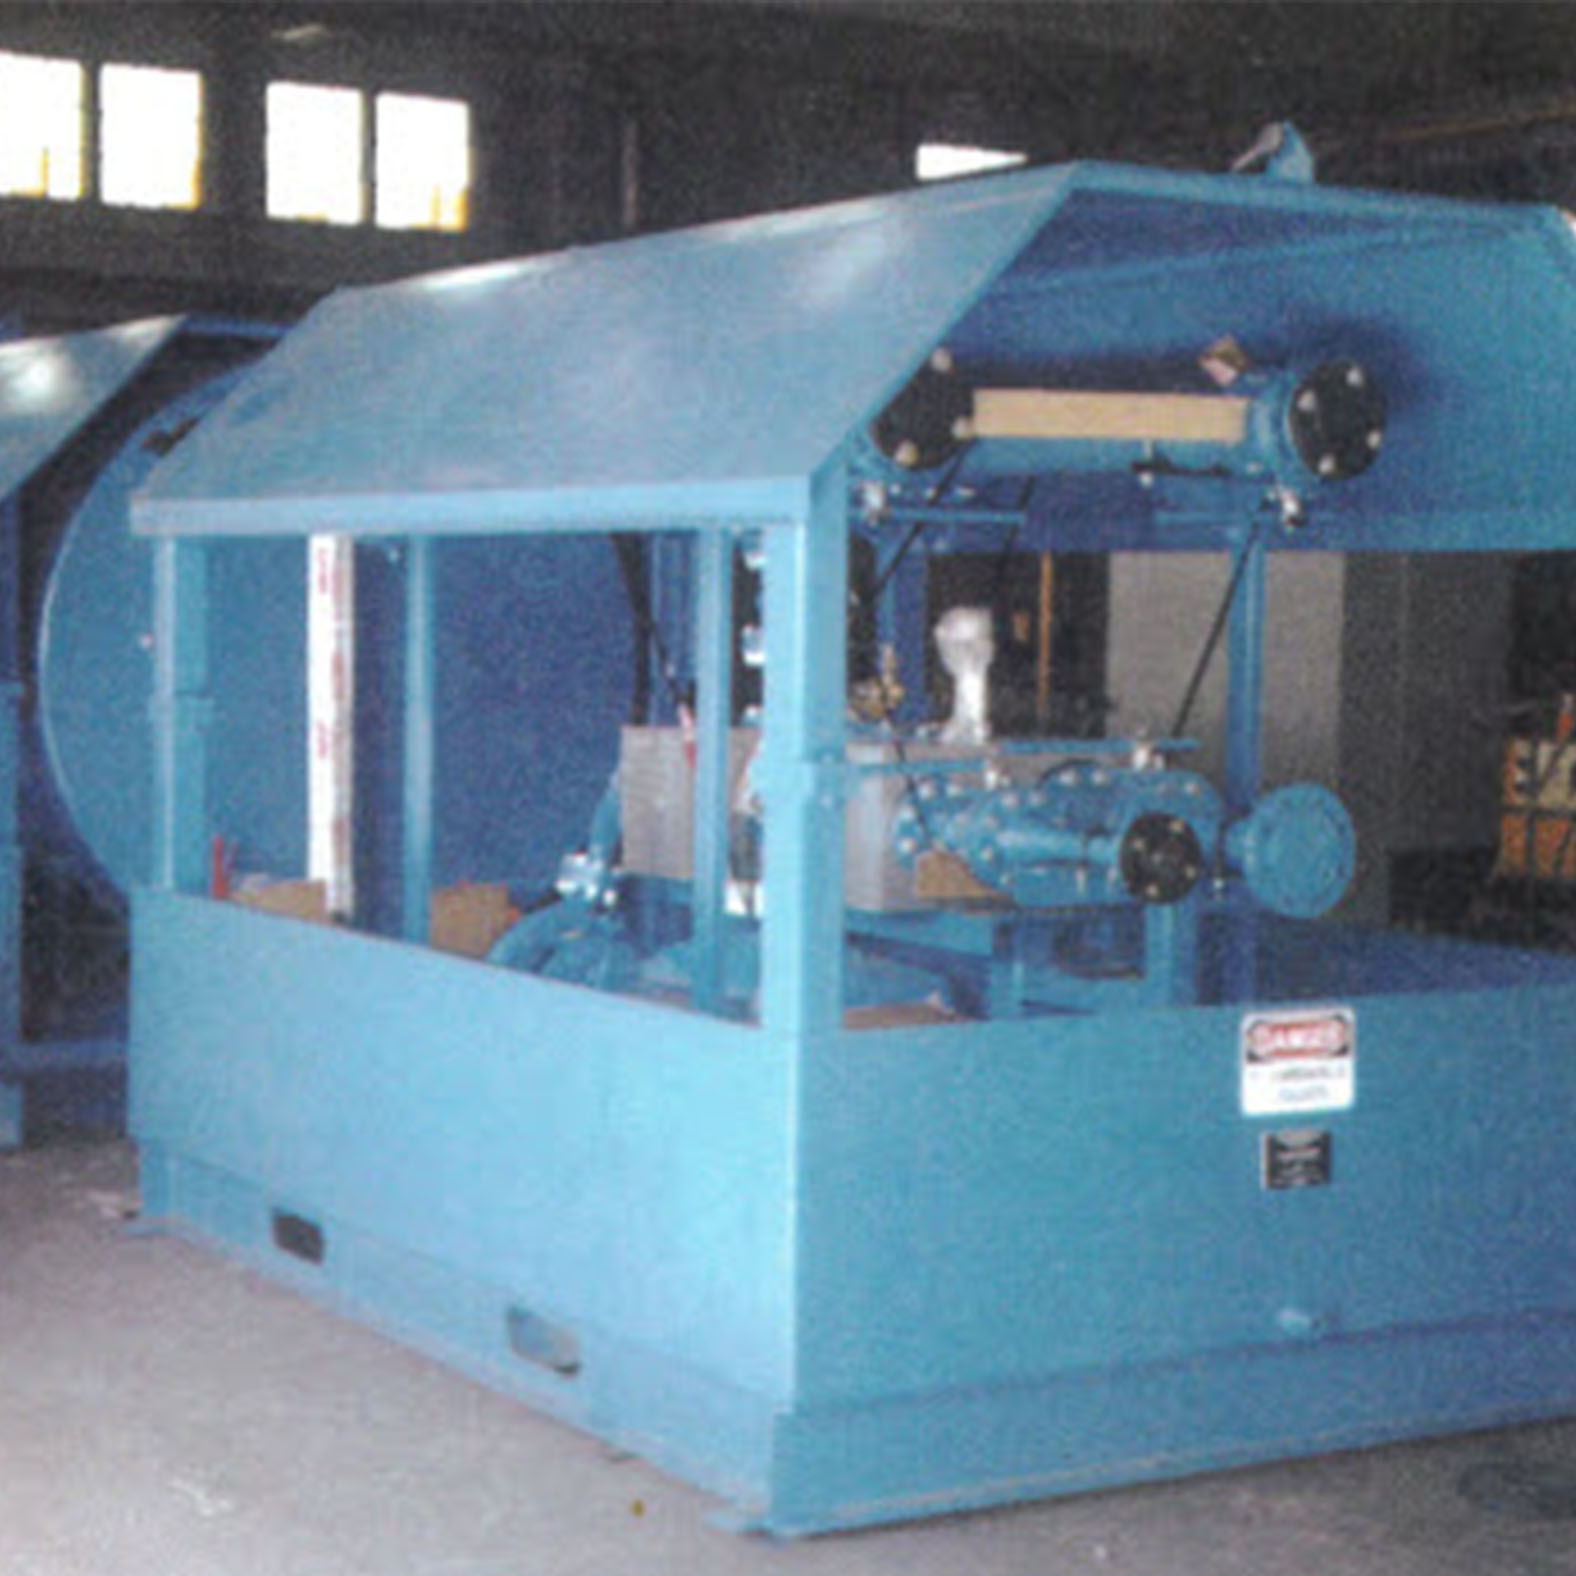 8420 Fuel Flow Test Stand